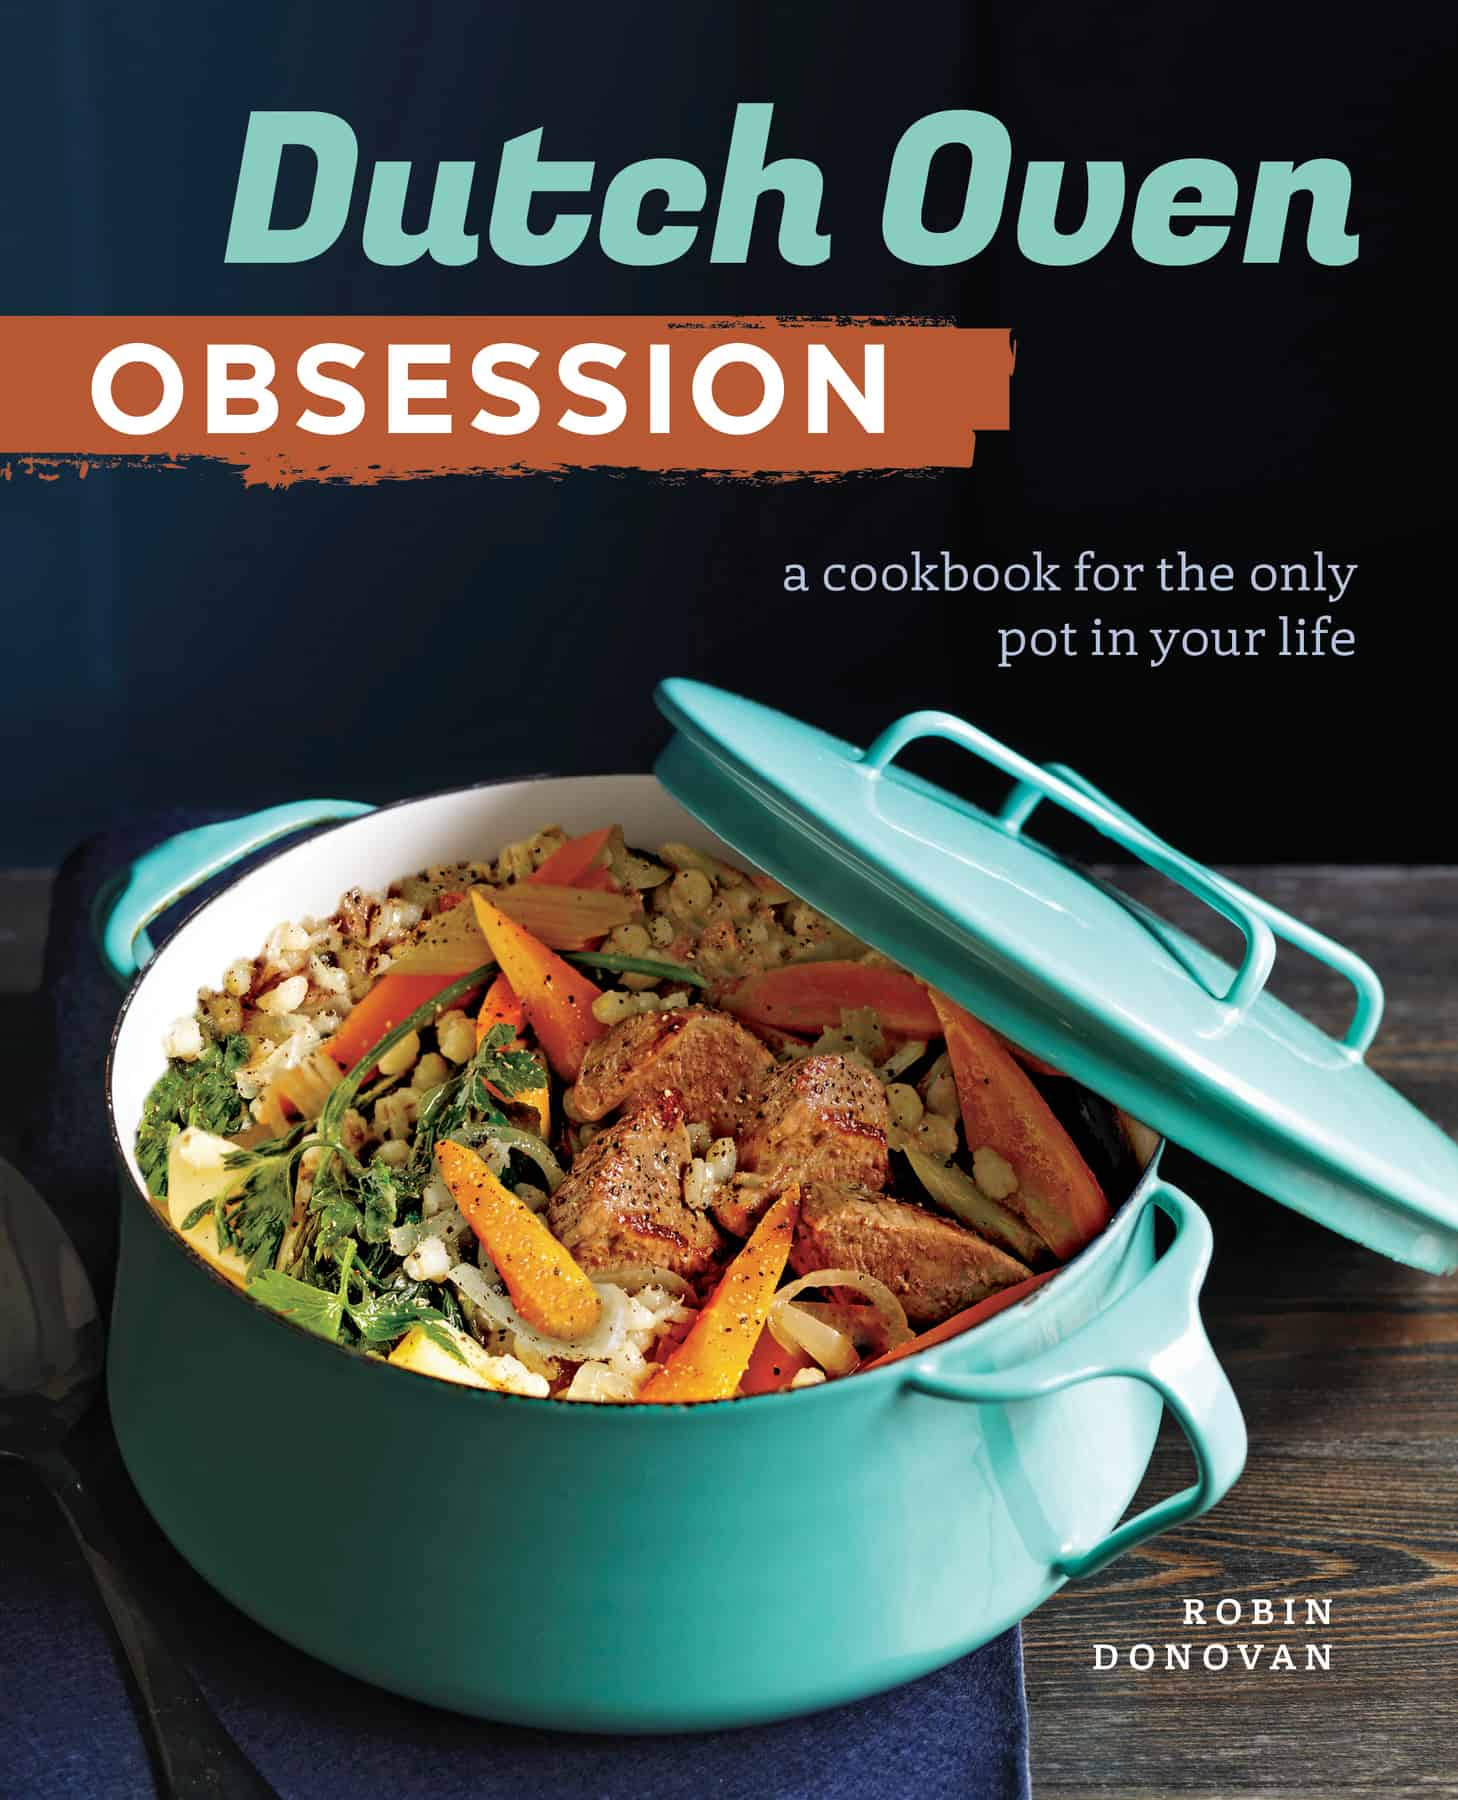 Dutch Oven Obsession–Recipe and Cookbook Giveaway!